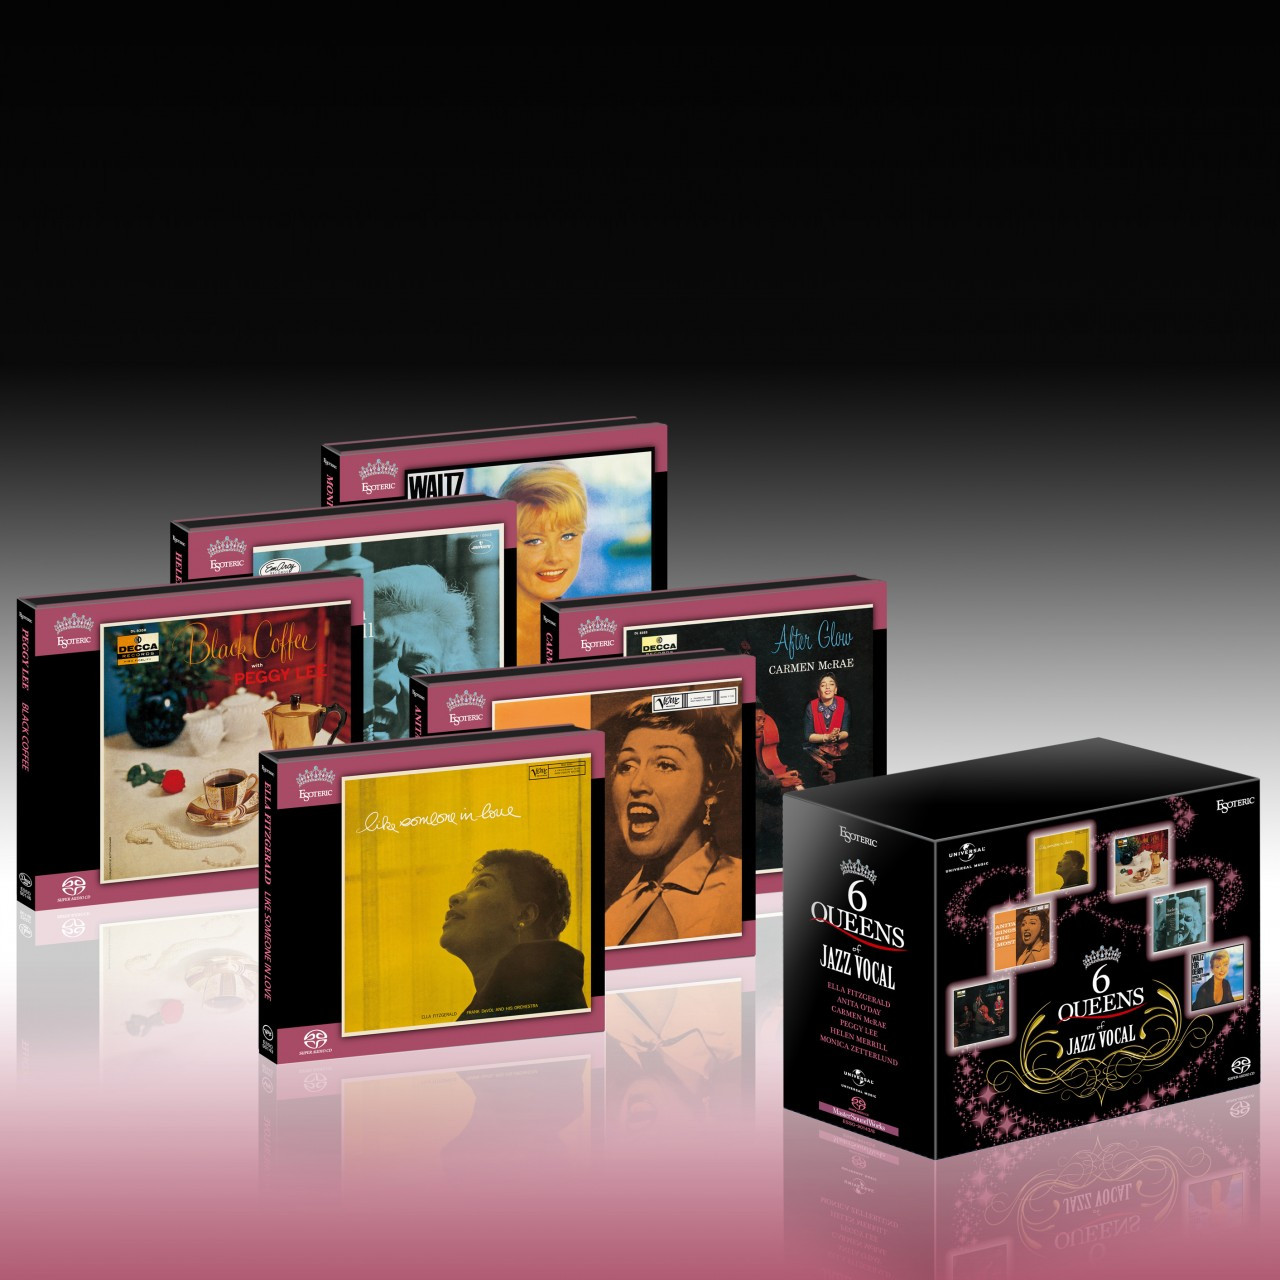 6 Queens of Jazz Vocal Esoteric SACD box set